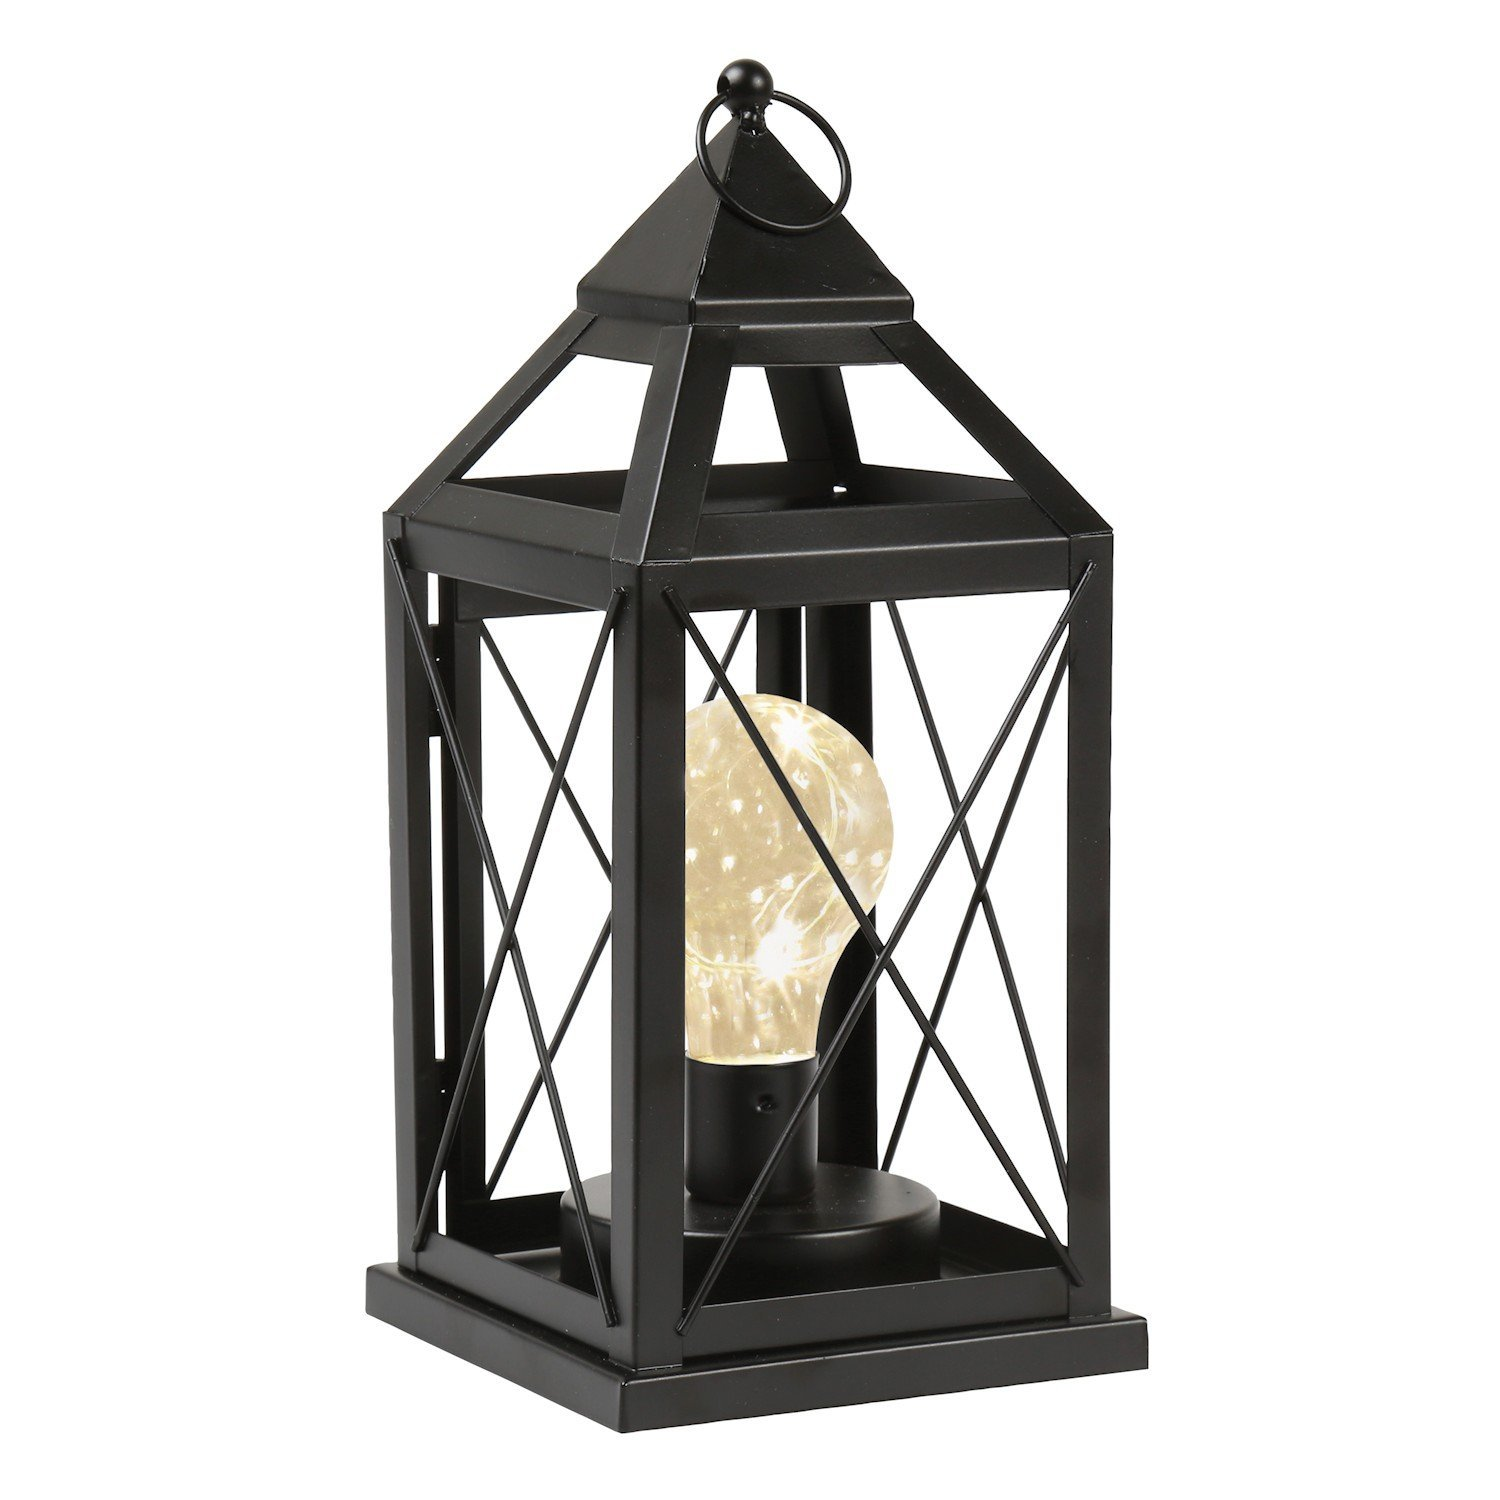 GM11218 Metal Cage Style Desk Decorative Camping Lights